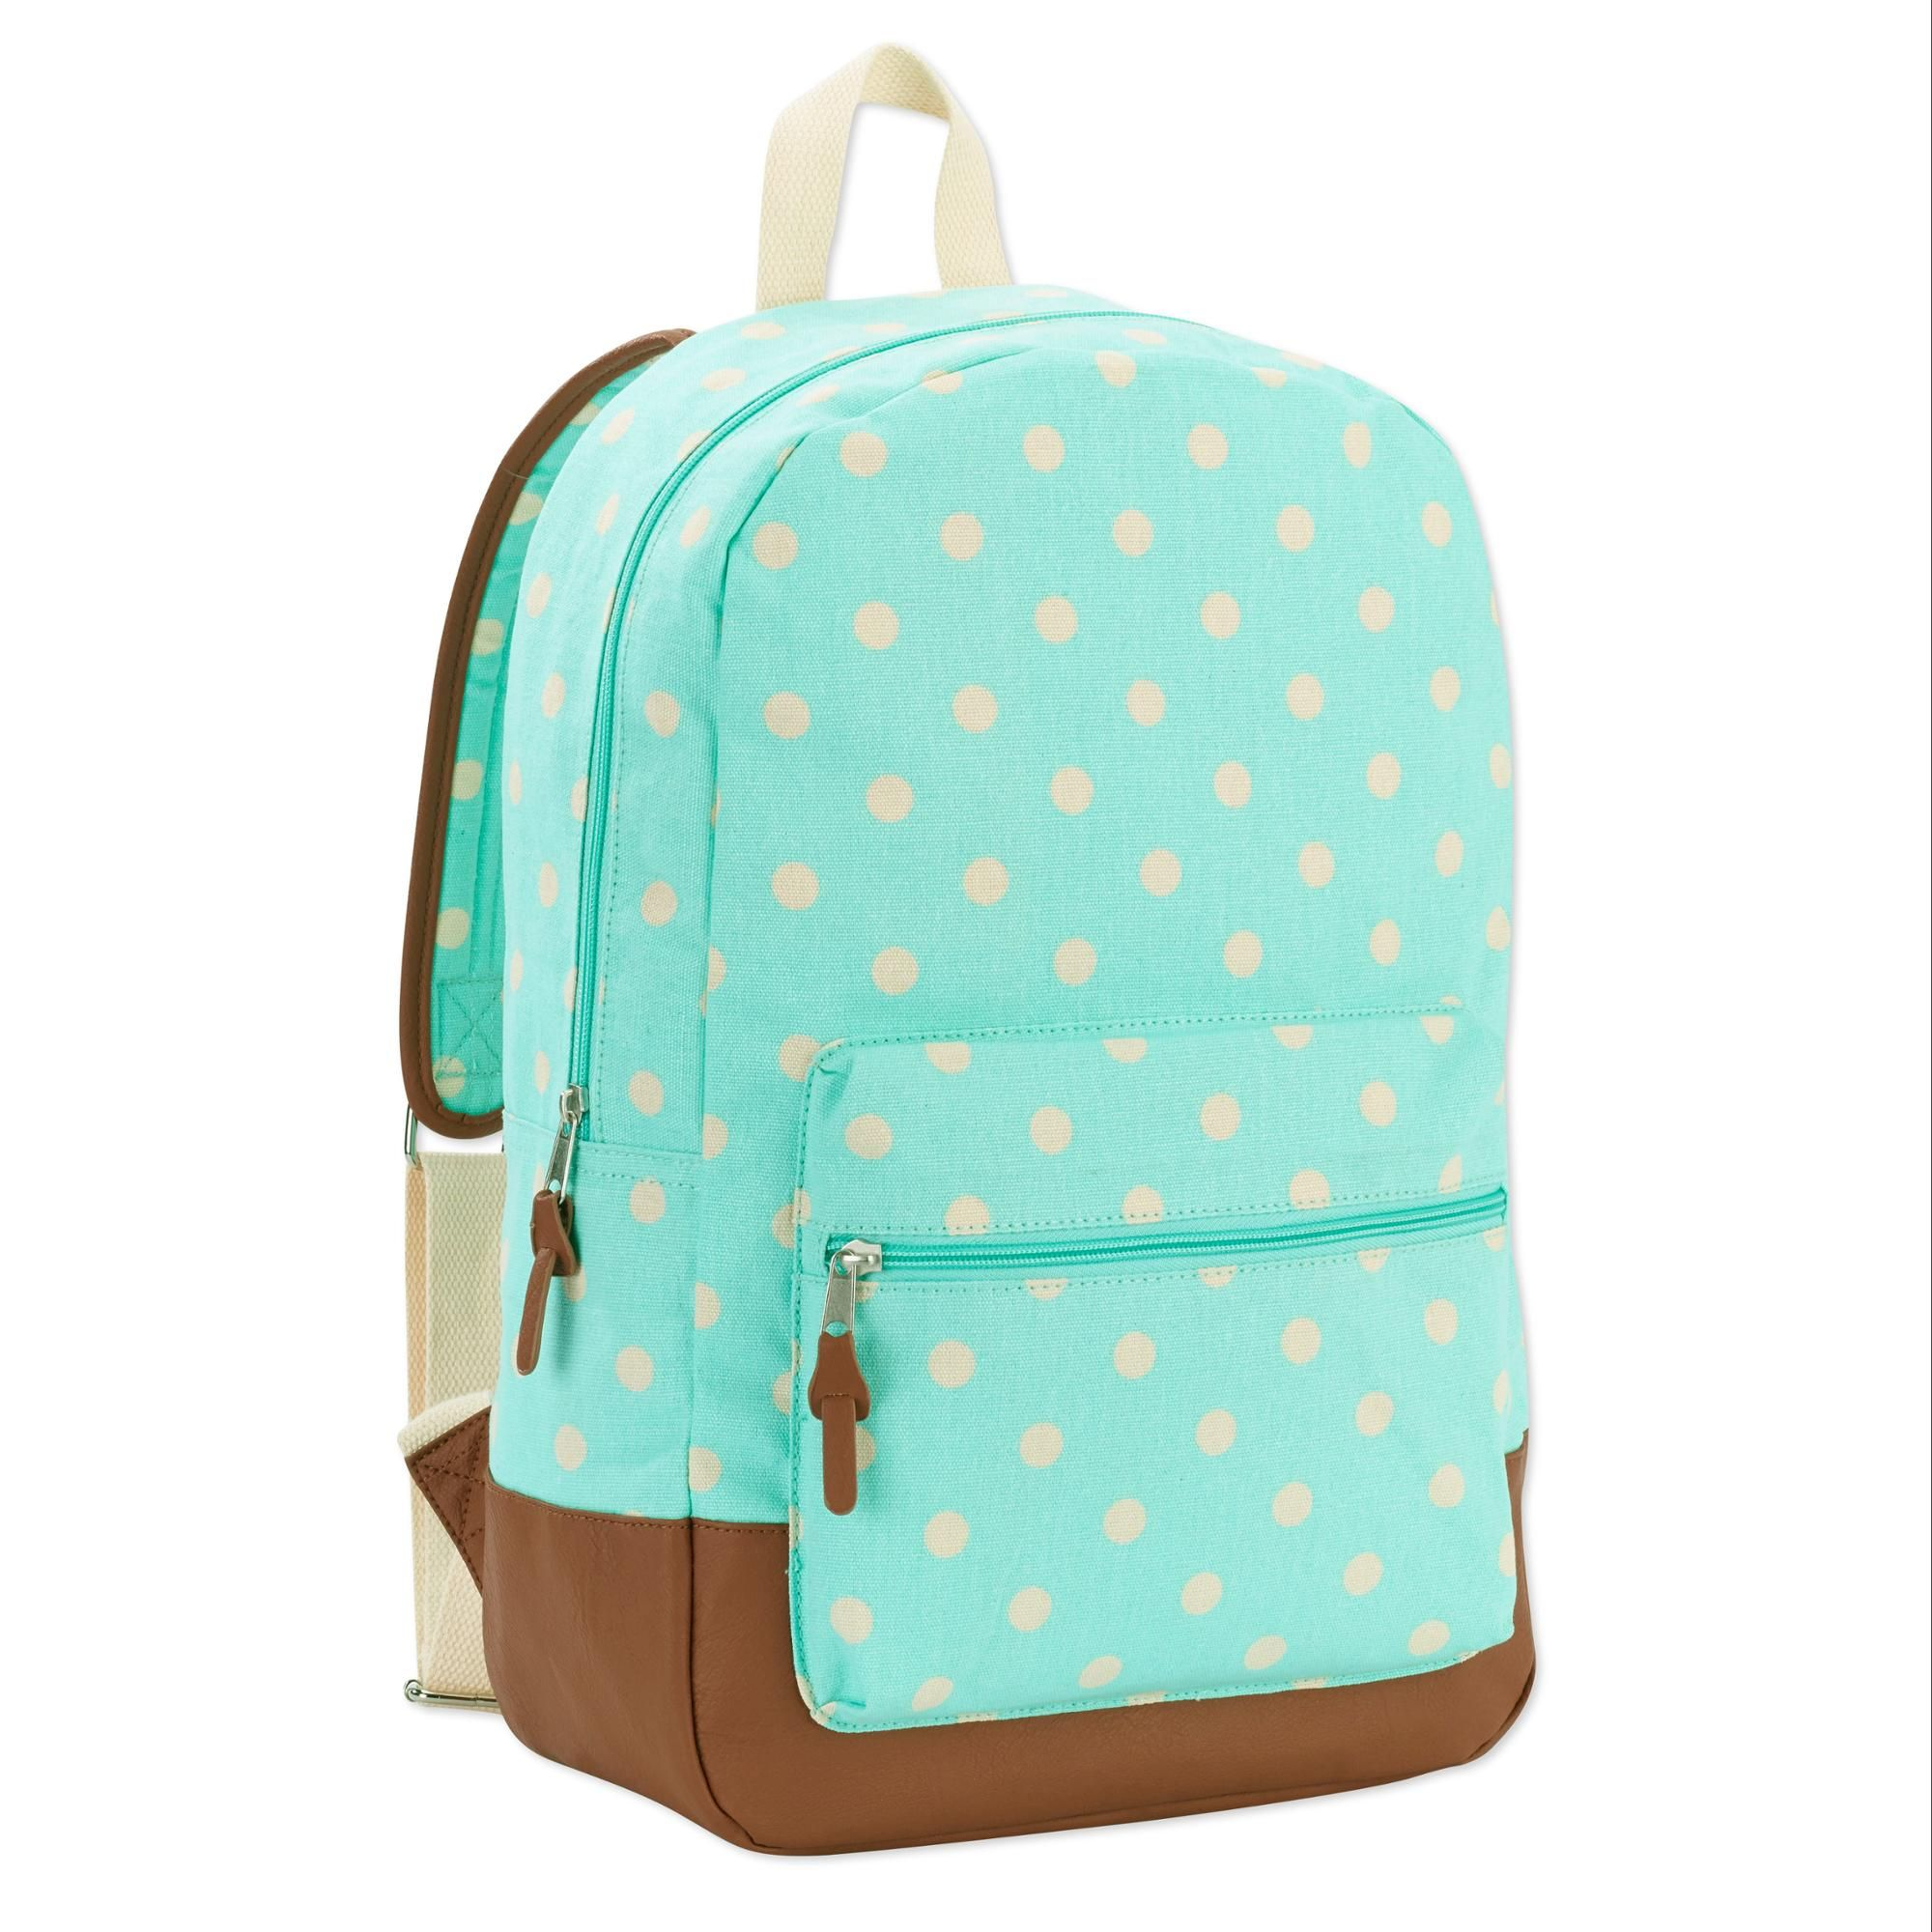 ccca01de63f Teen School Backpacks   Backpacks - Walmart.com